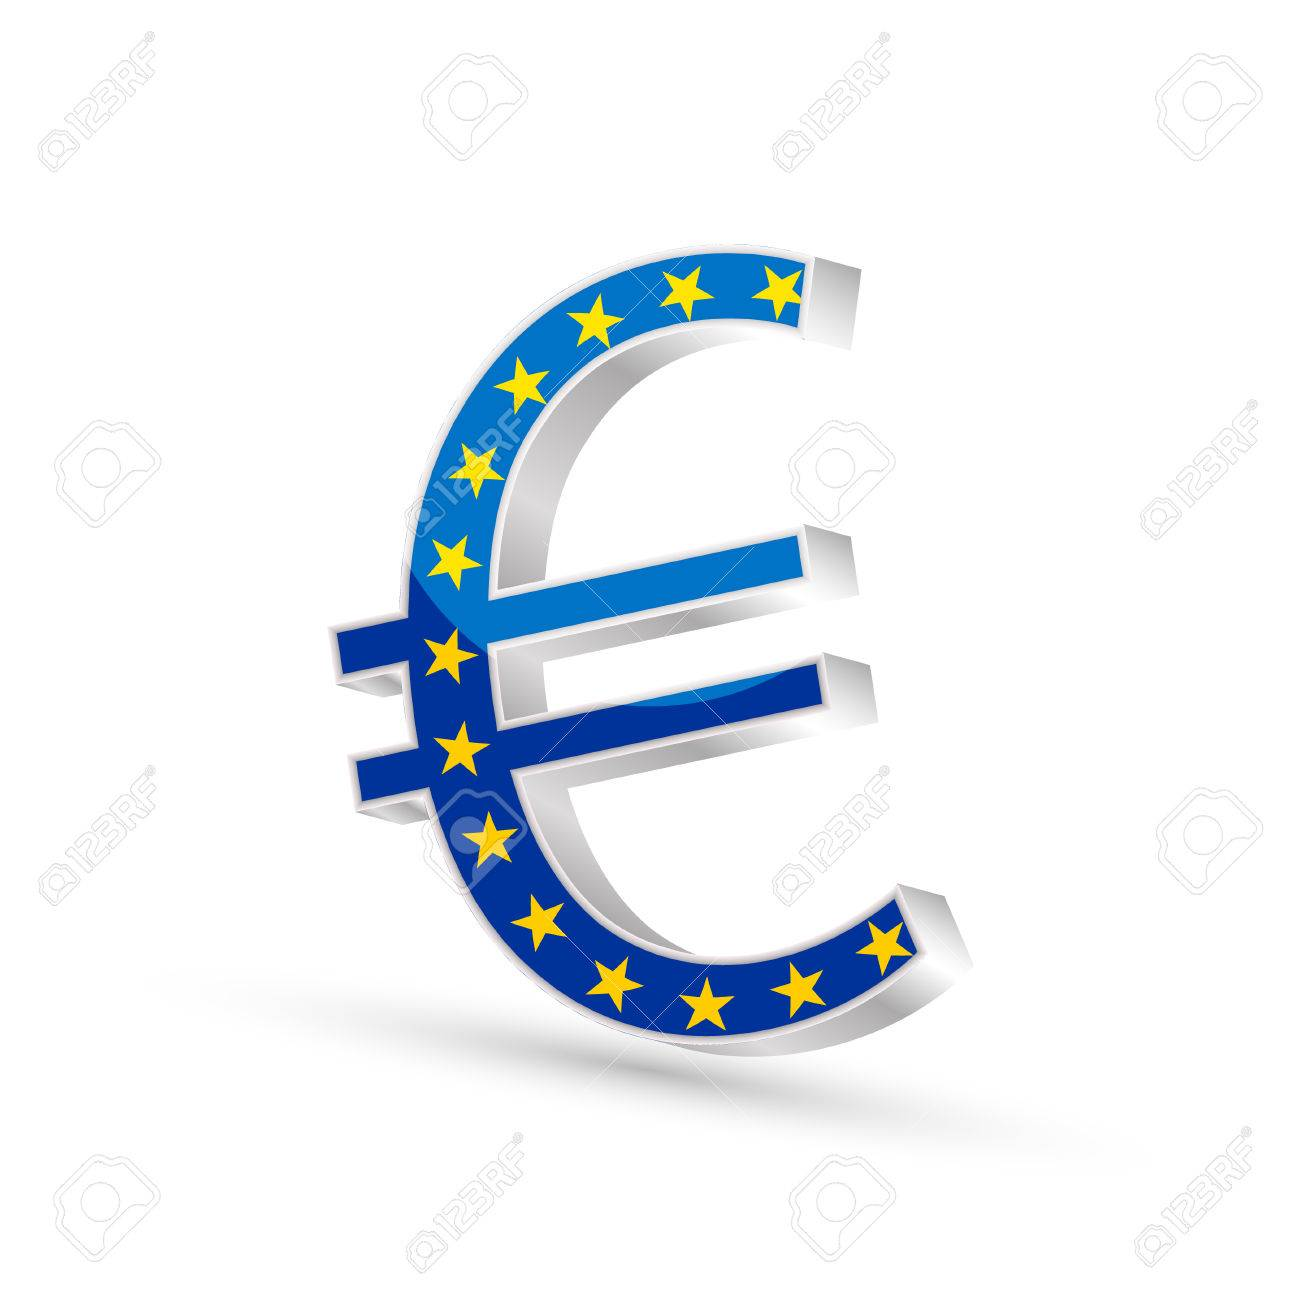 Euro currency gold symbol icon with flag of european union 3d euro currency gold symbol icon with flag of european union 3d vector illustration stock vector biocorpaavc Images